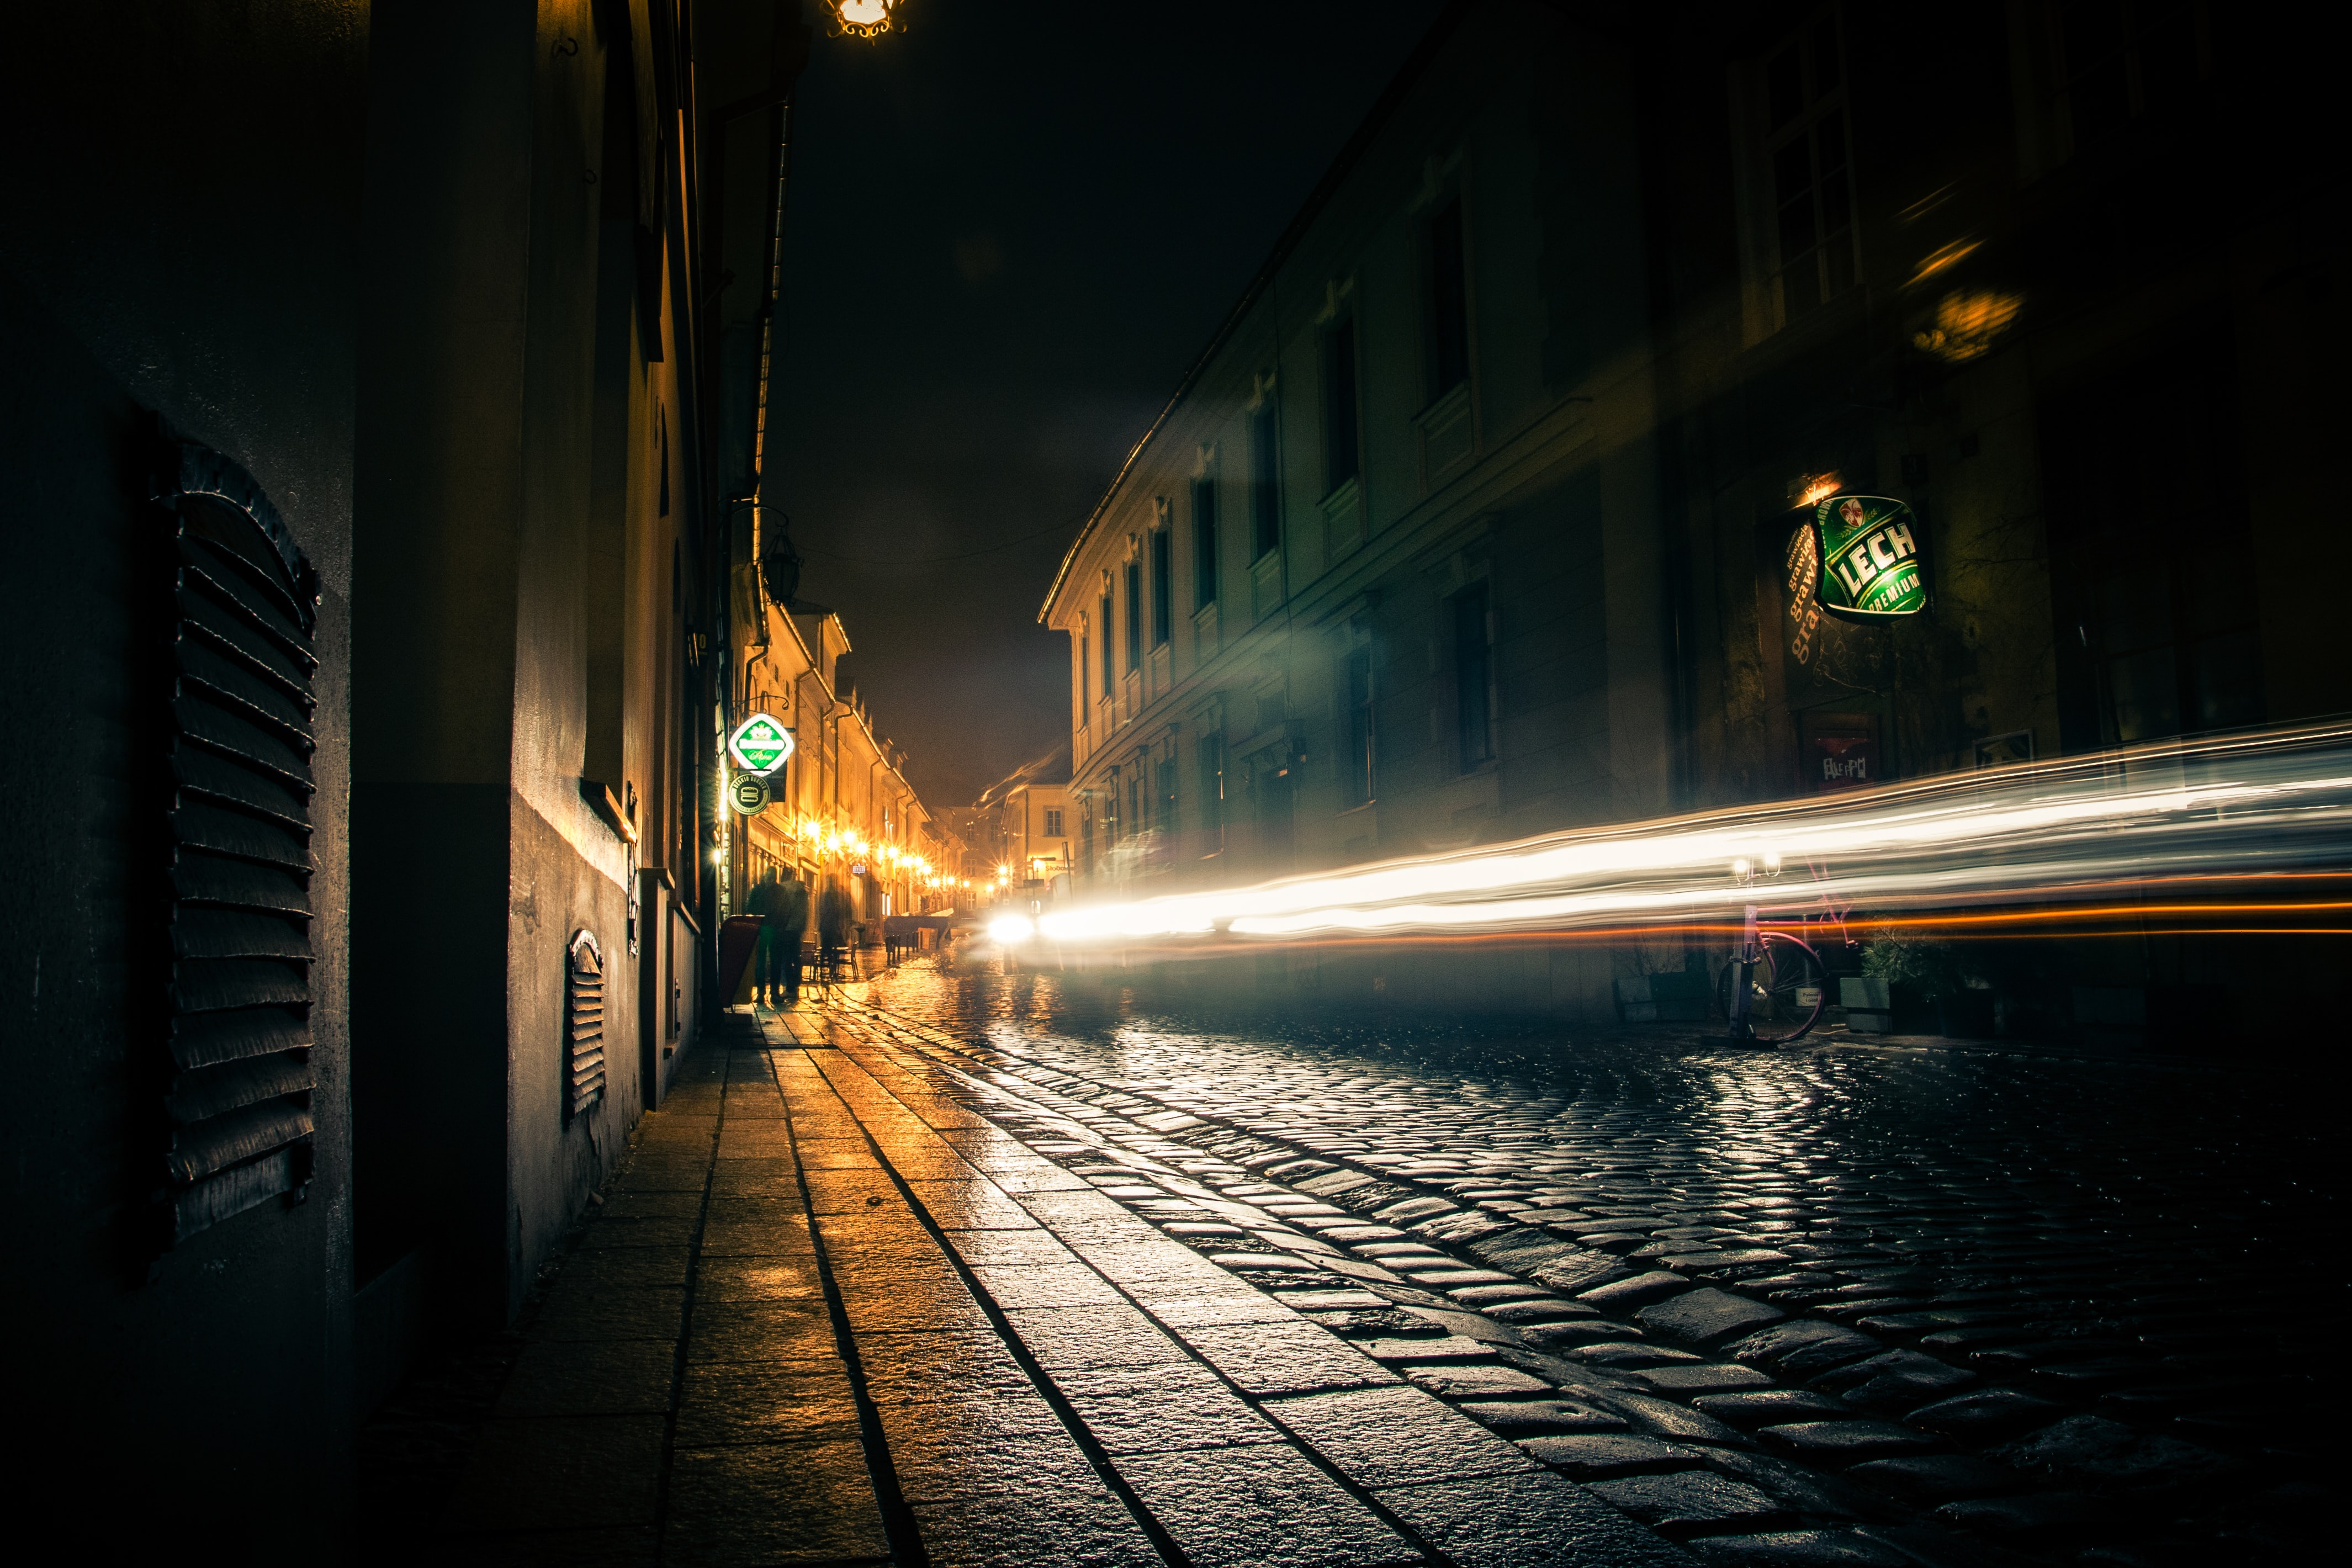 A slow shutter shot of a motion-triggered light trail in a backstreet alley